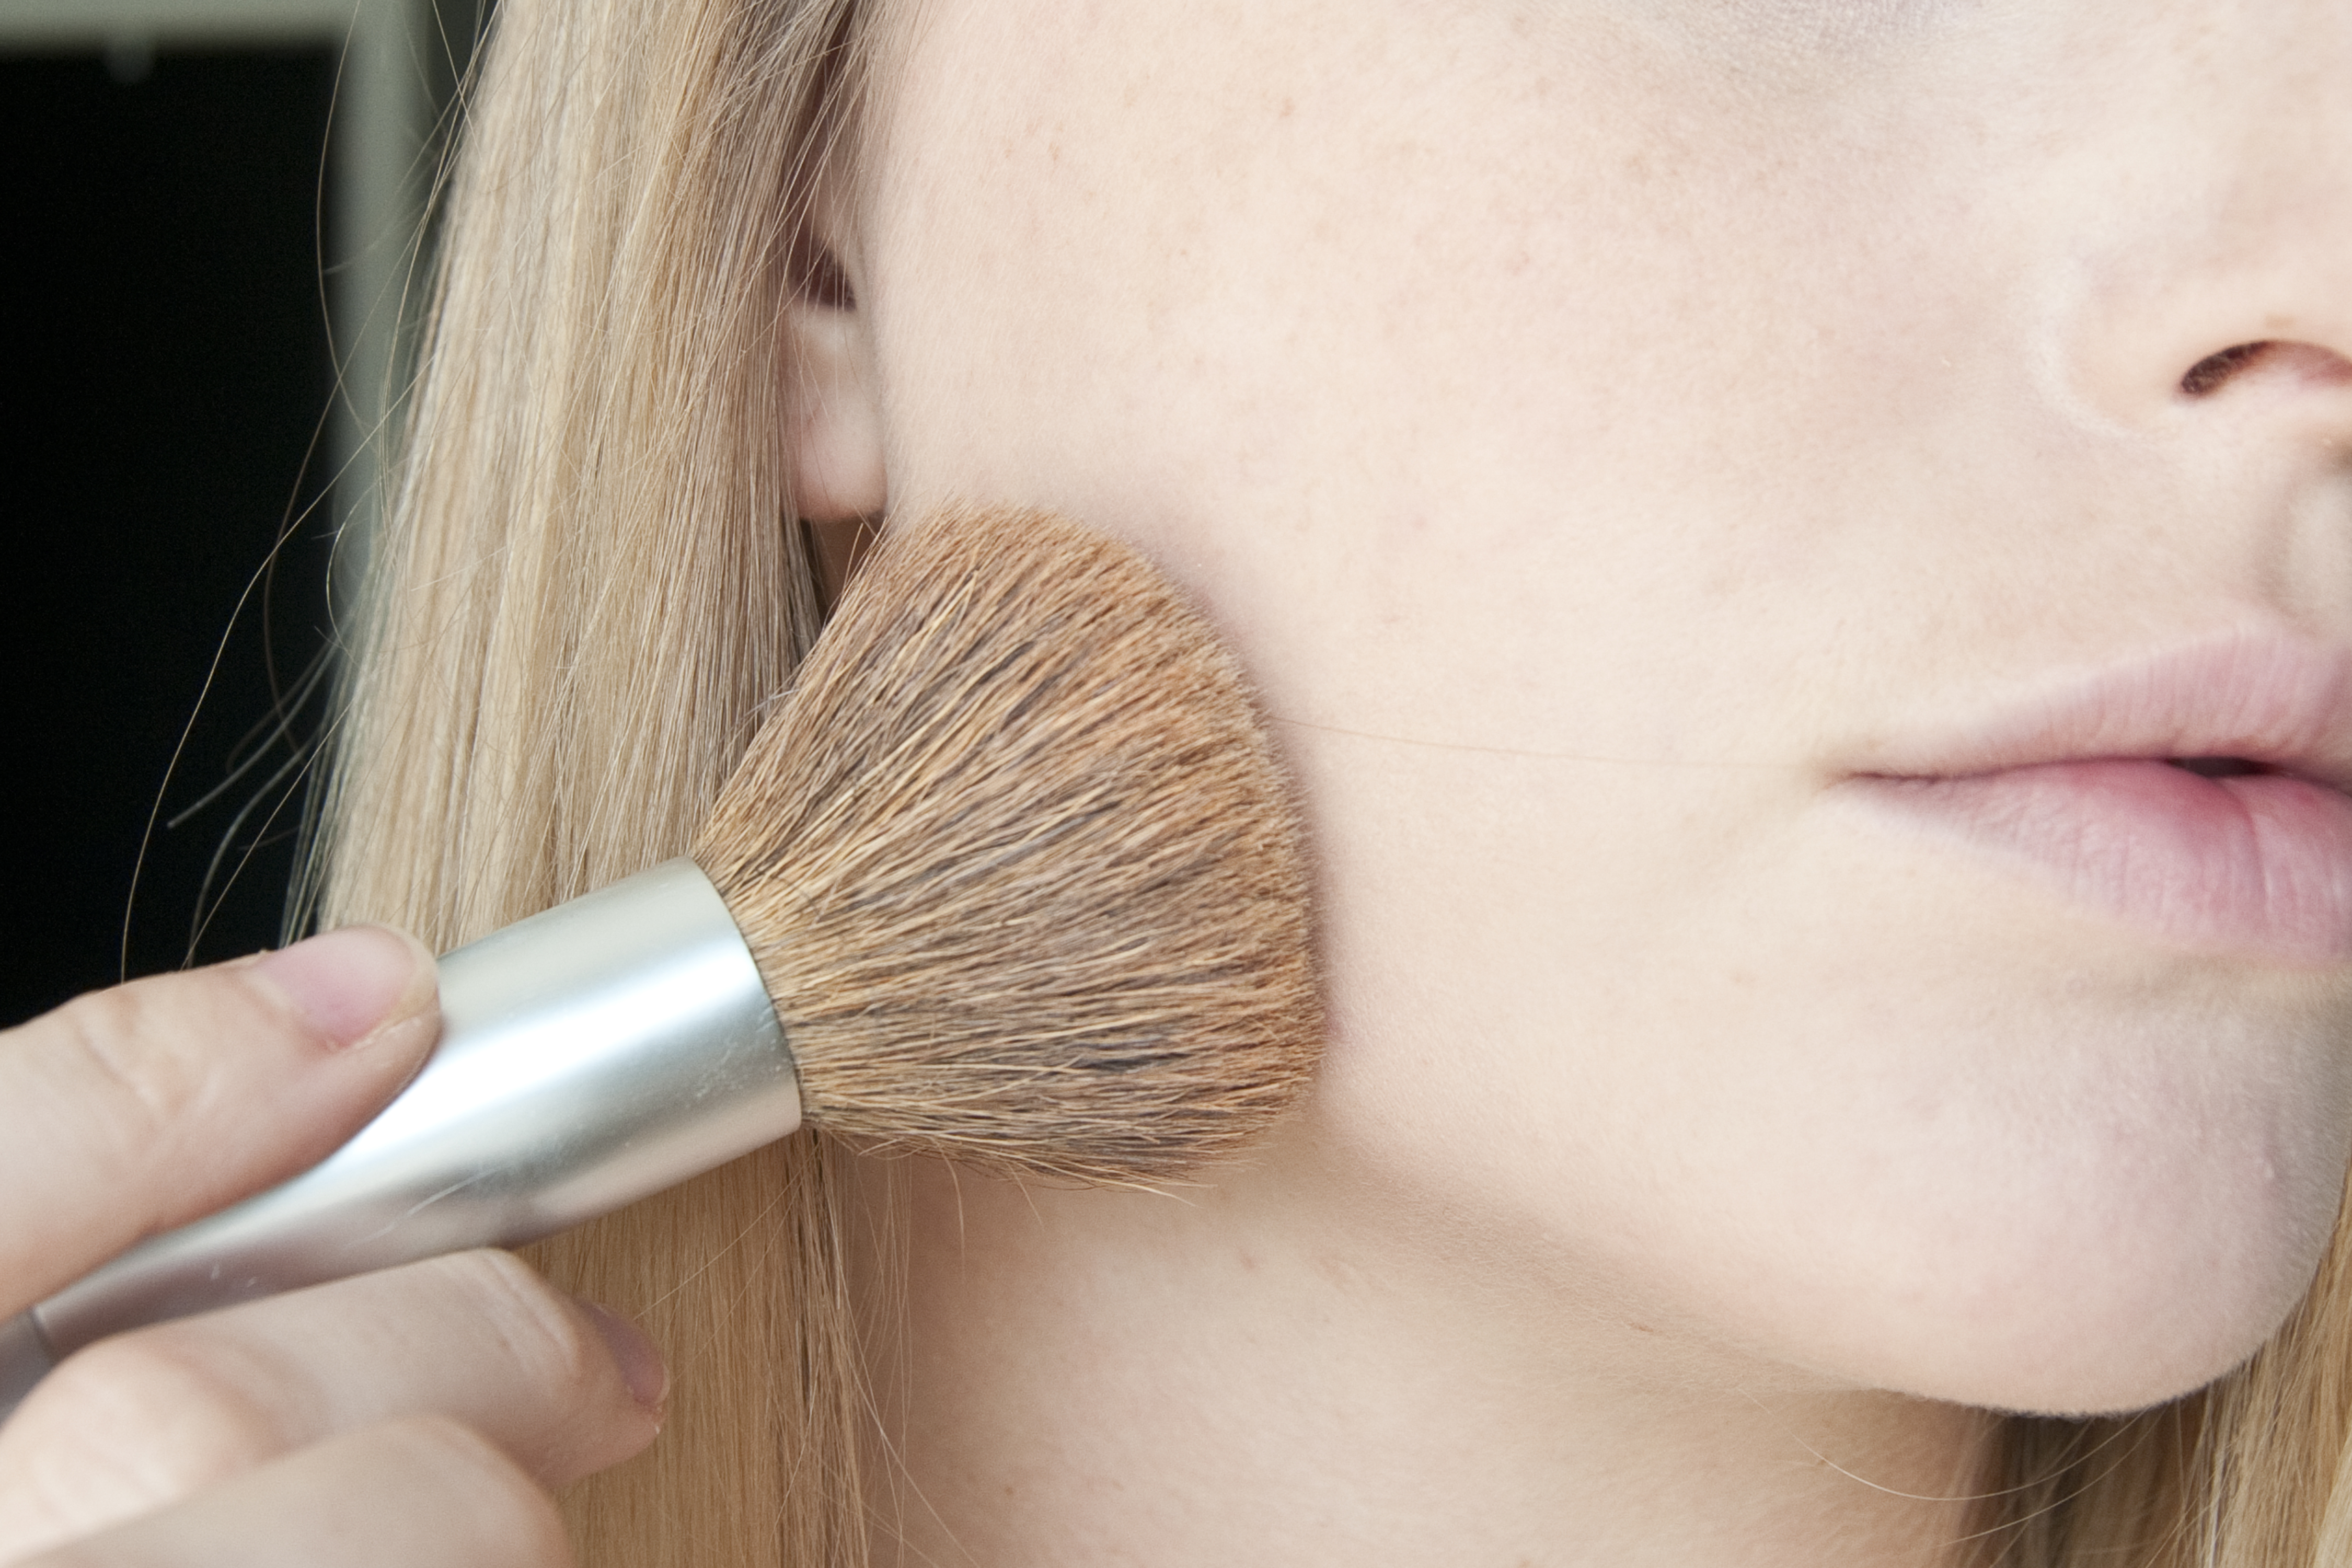 how to close open pores on nose home remedies